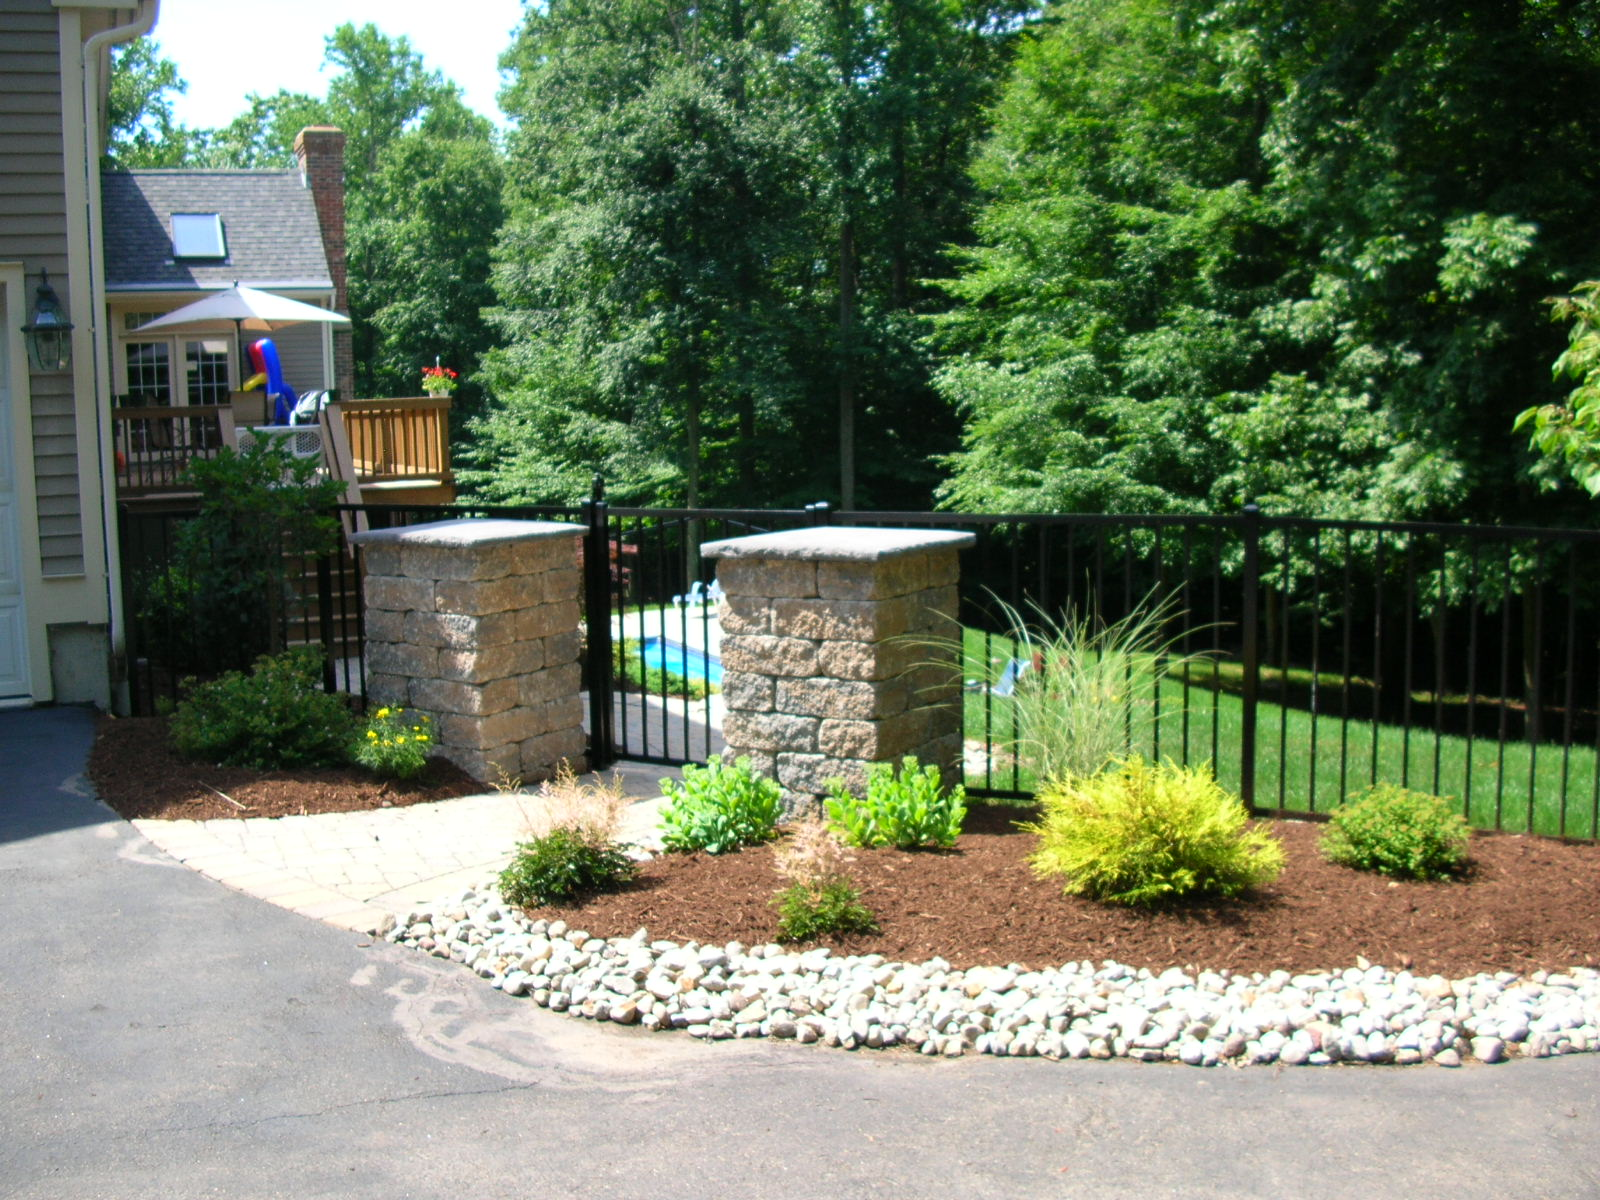 Preferred Properties Landscaping And Masonry Puts The